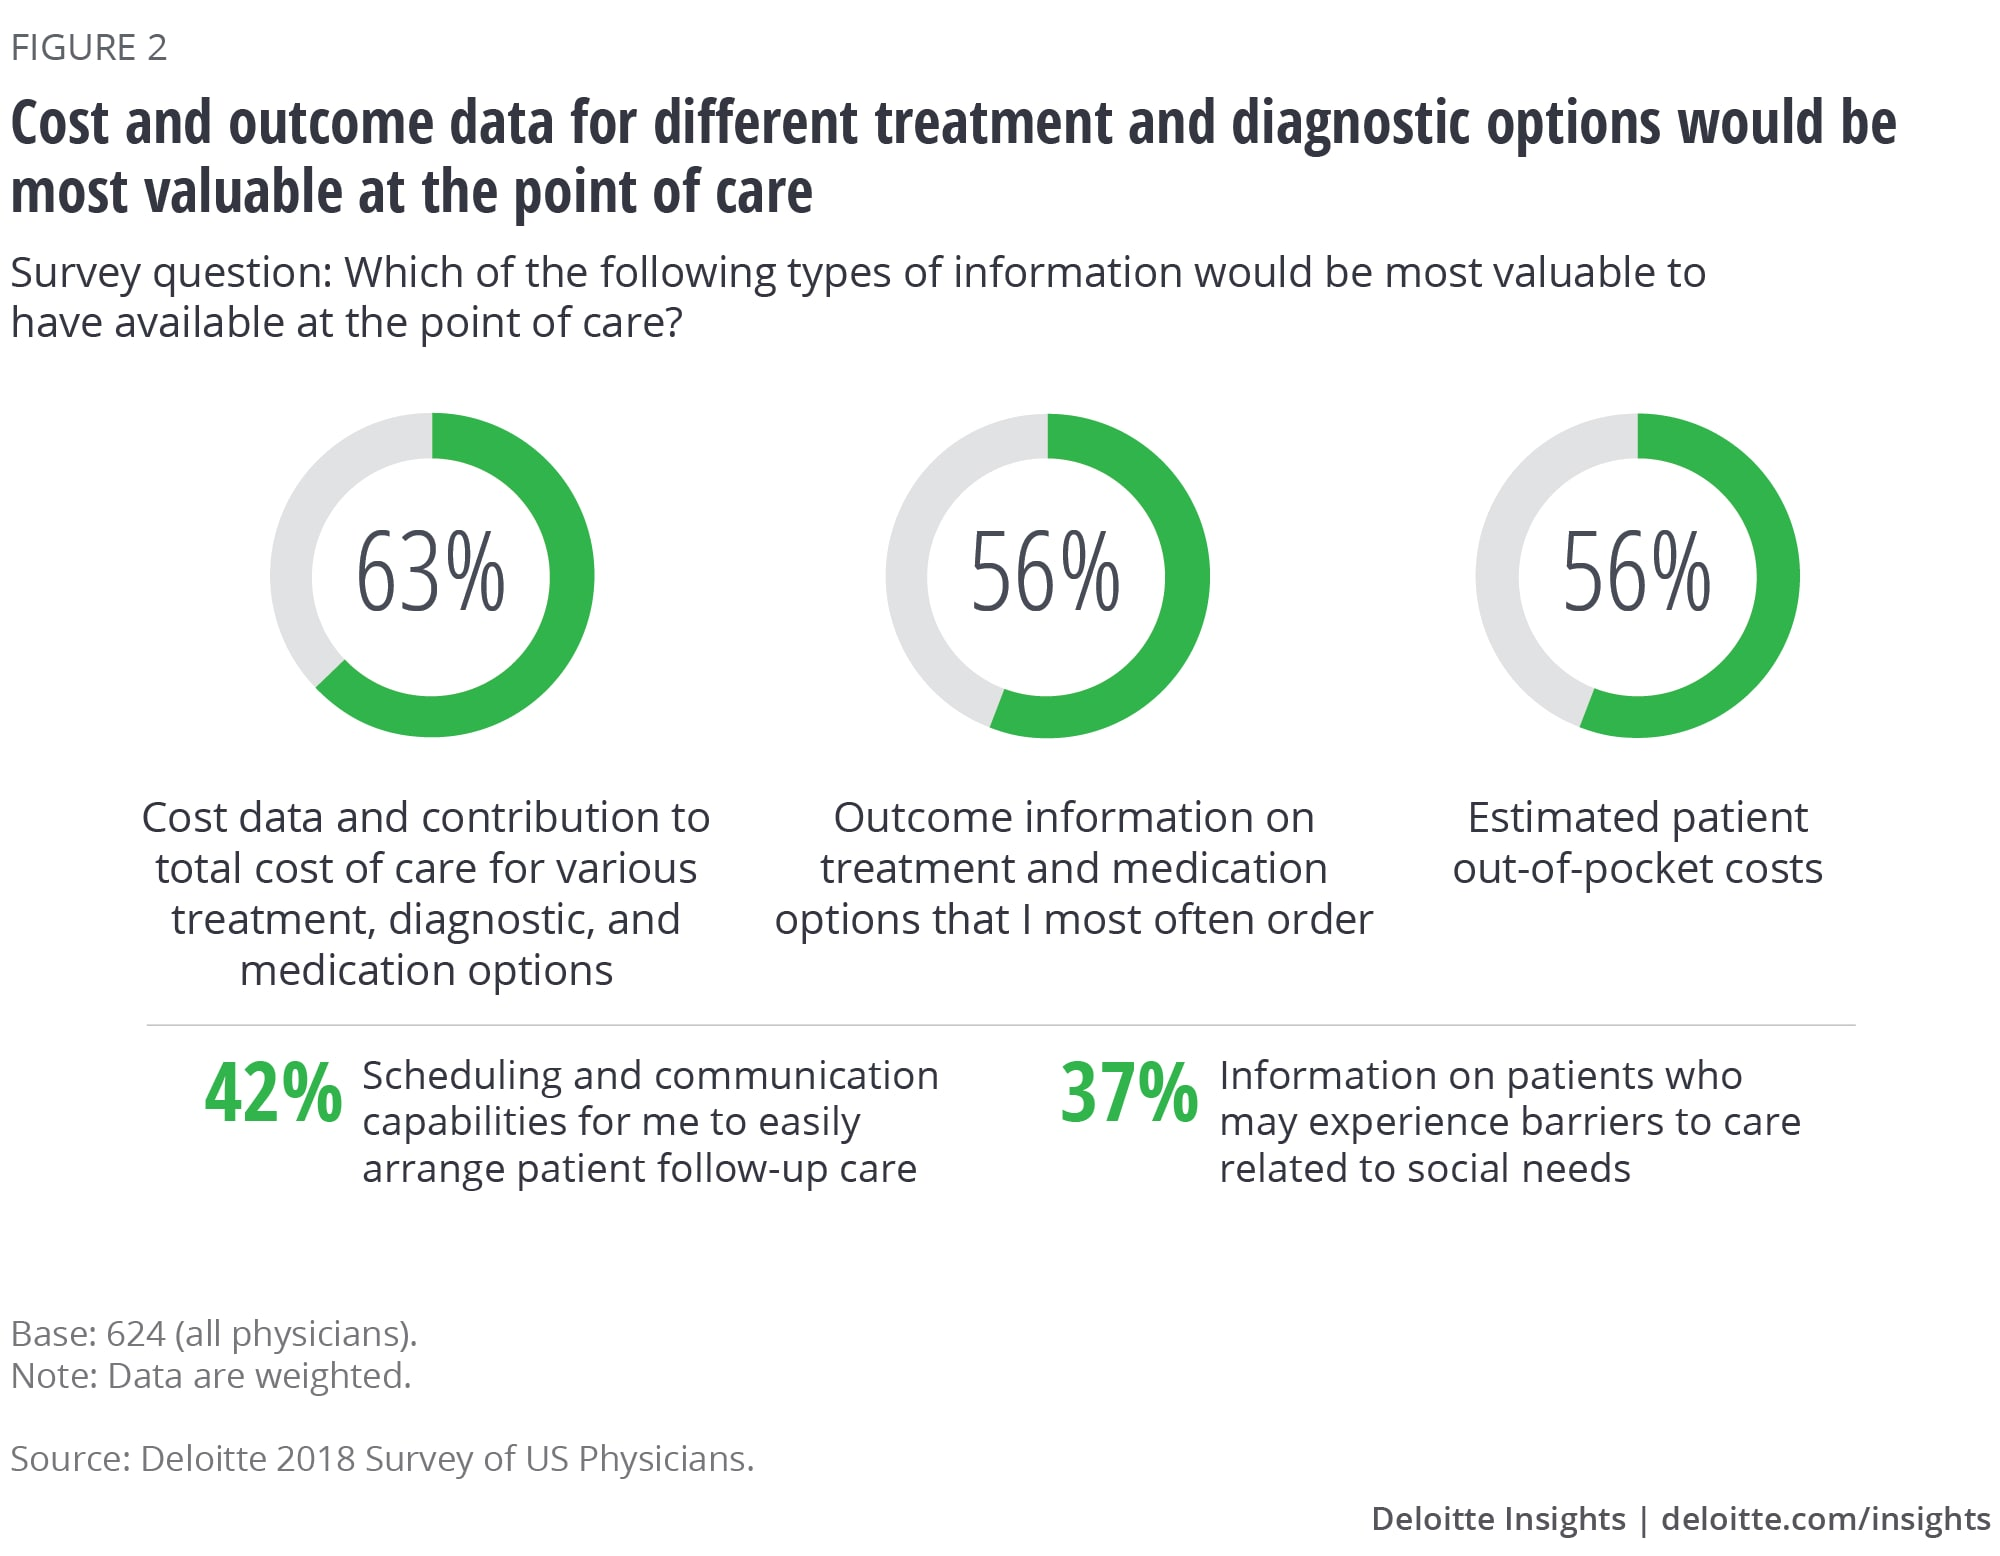 Cost and outcome data for different treatment and diagnostic options would be most valuable at the point of care